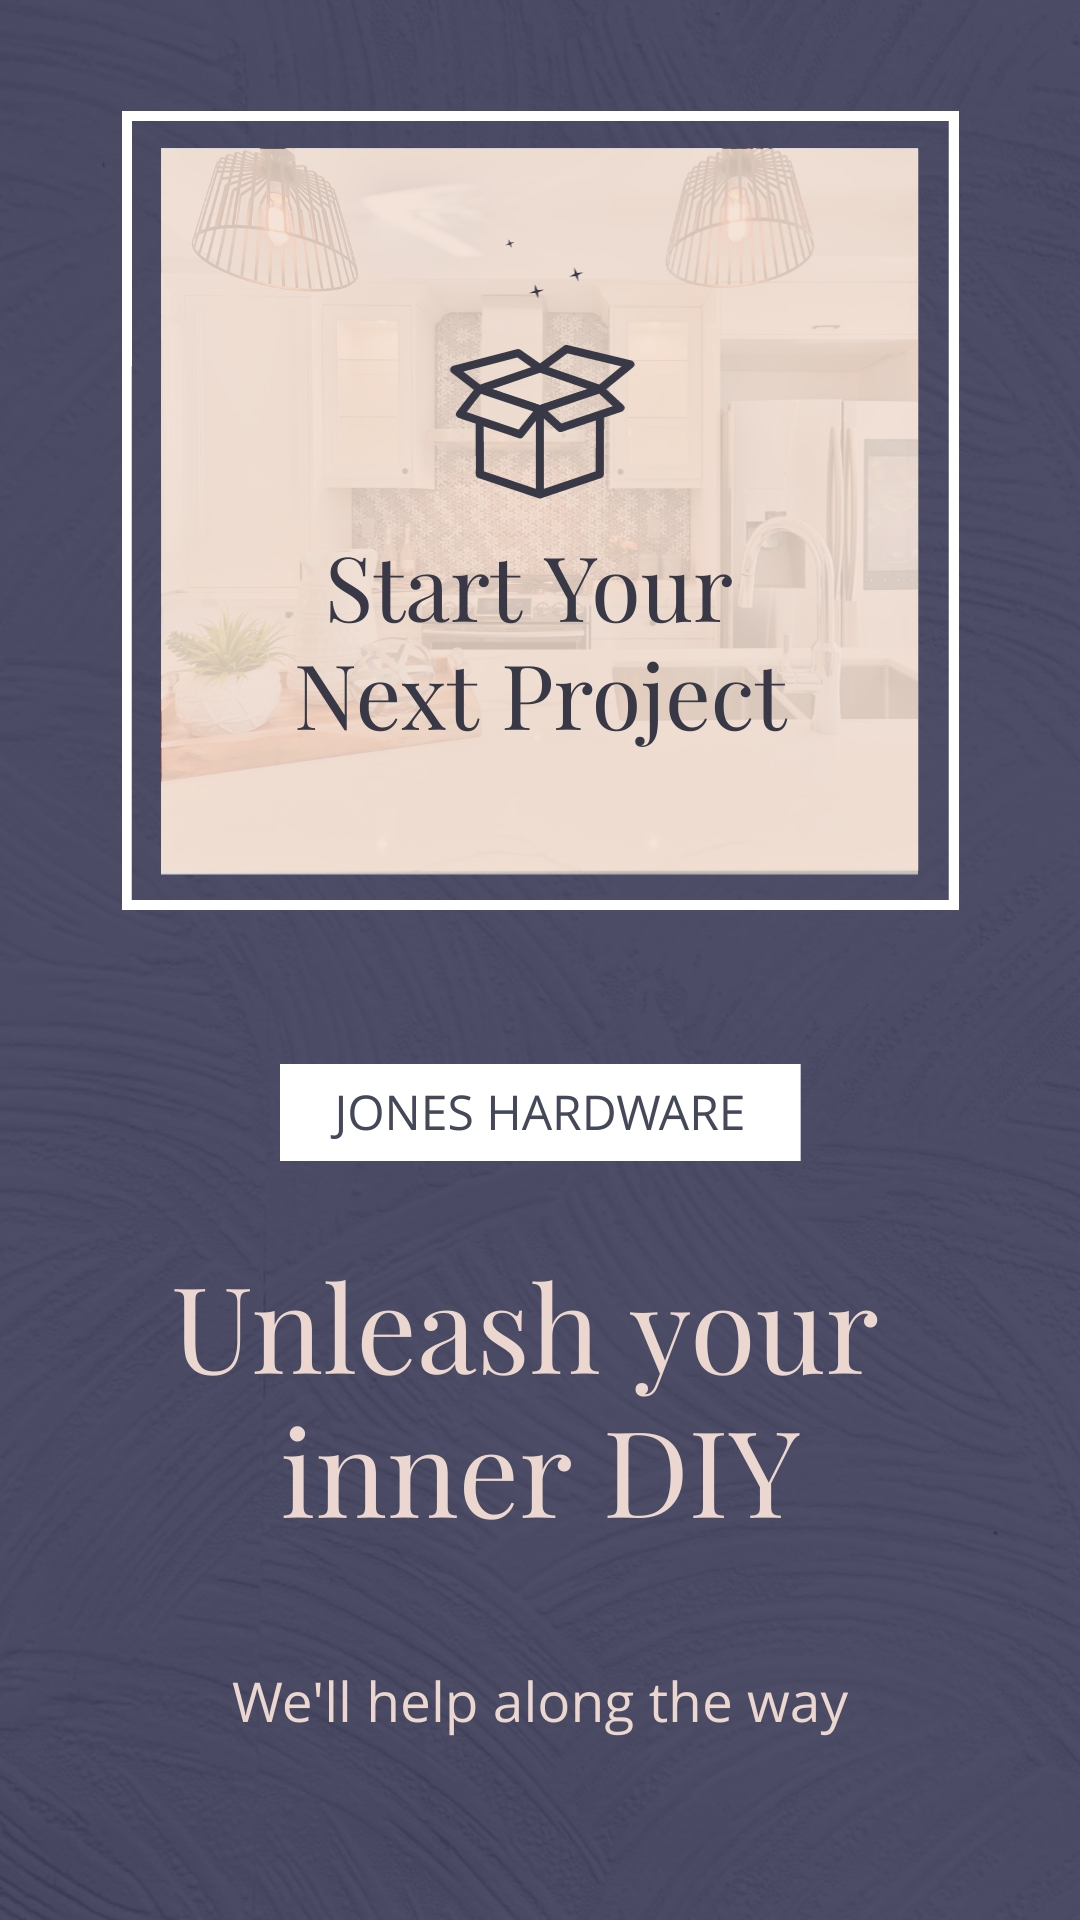 Home Improvements Store Bite-Sized Ad Vertical Template